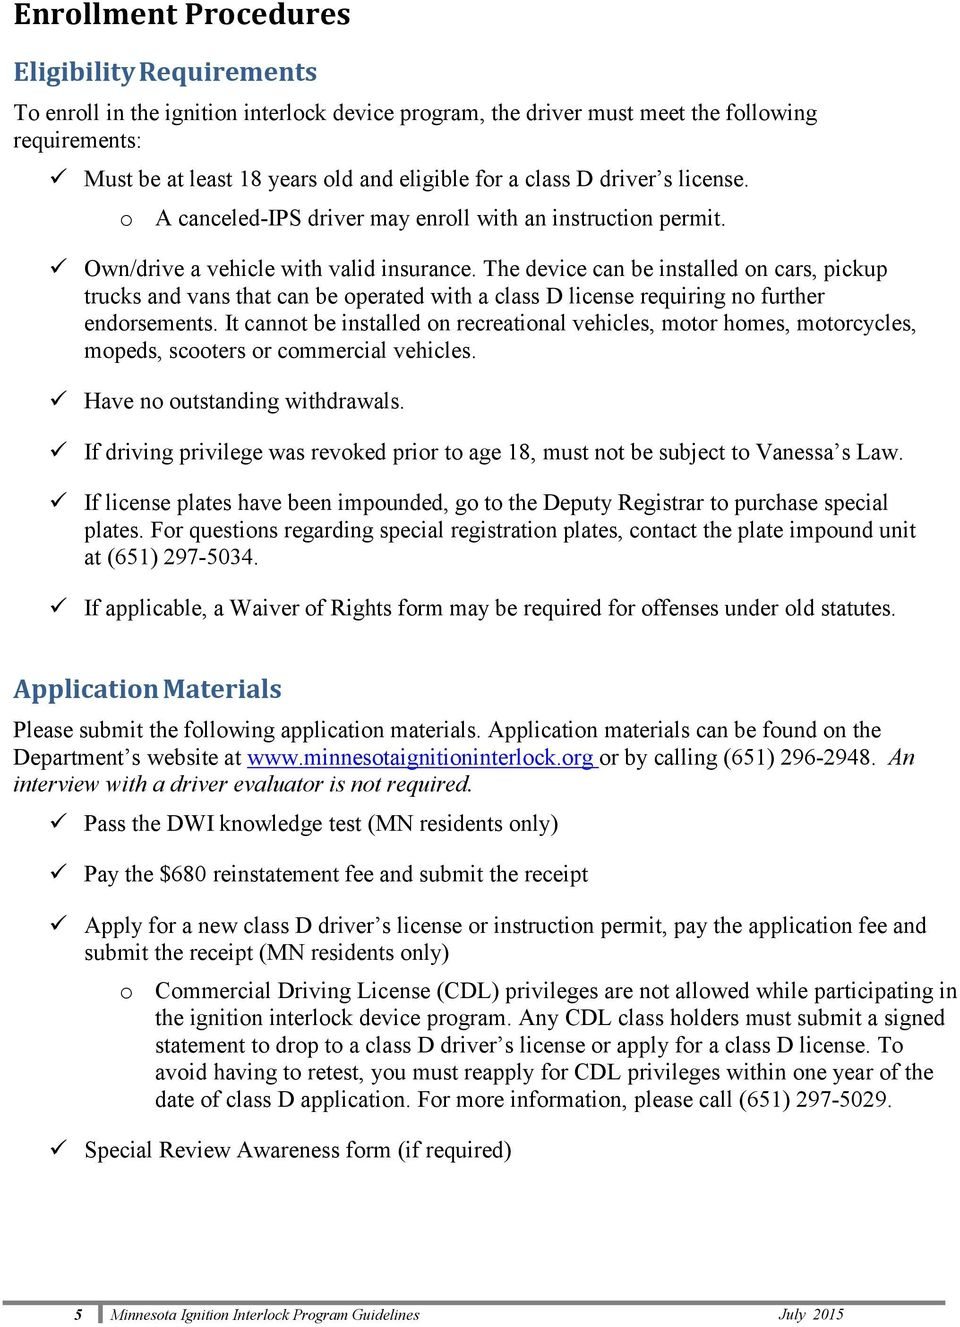 Minnesota Ignition Interlock Device Program Guidelines Pdf How To Bypass An Iid The Can Be Installed On Cars Pickup Trucks And Vans That Operated 6 Participation